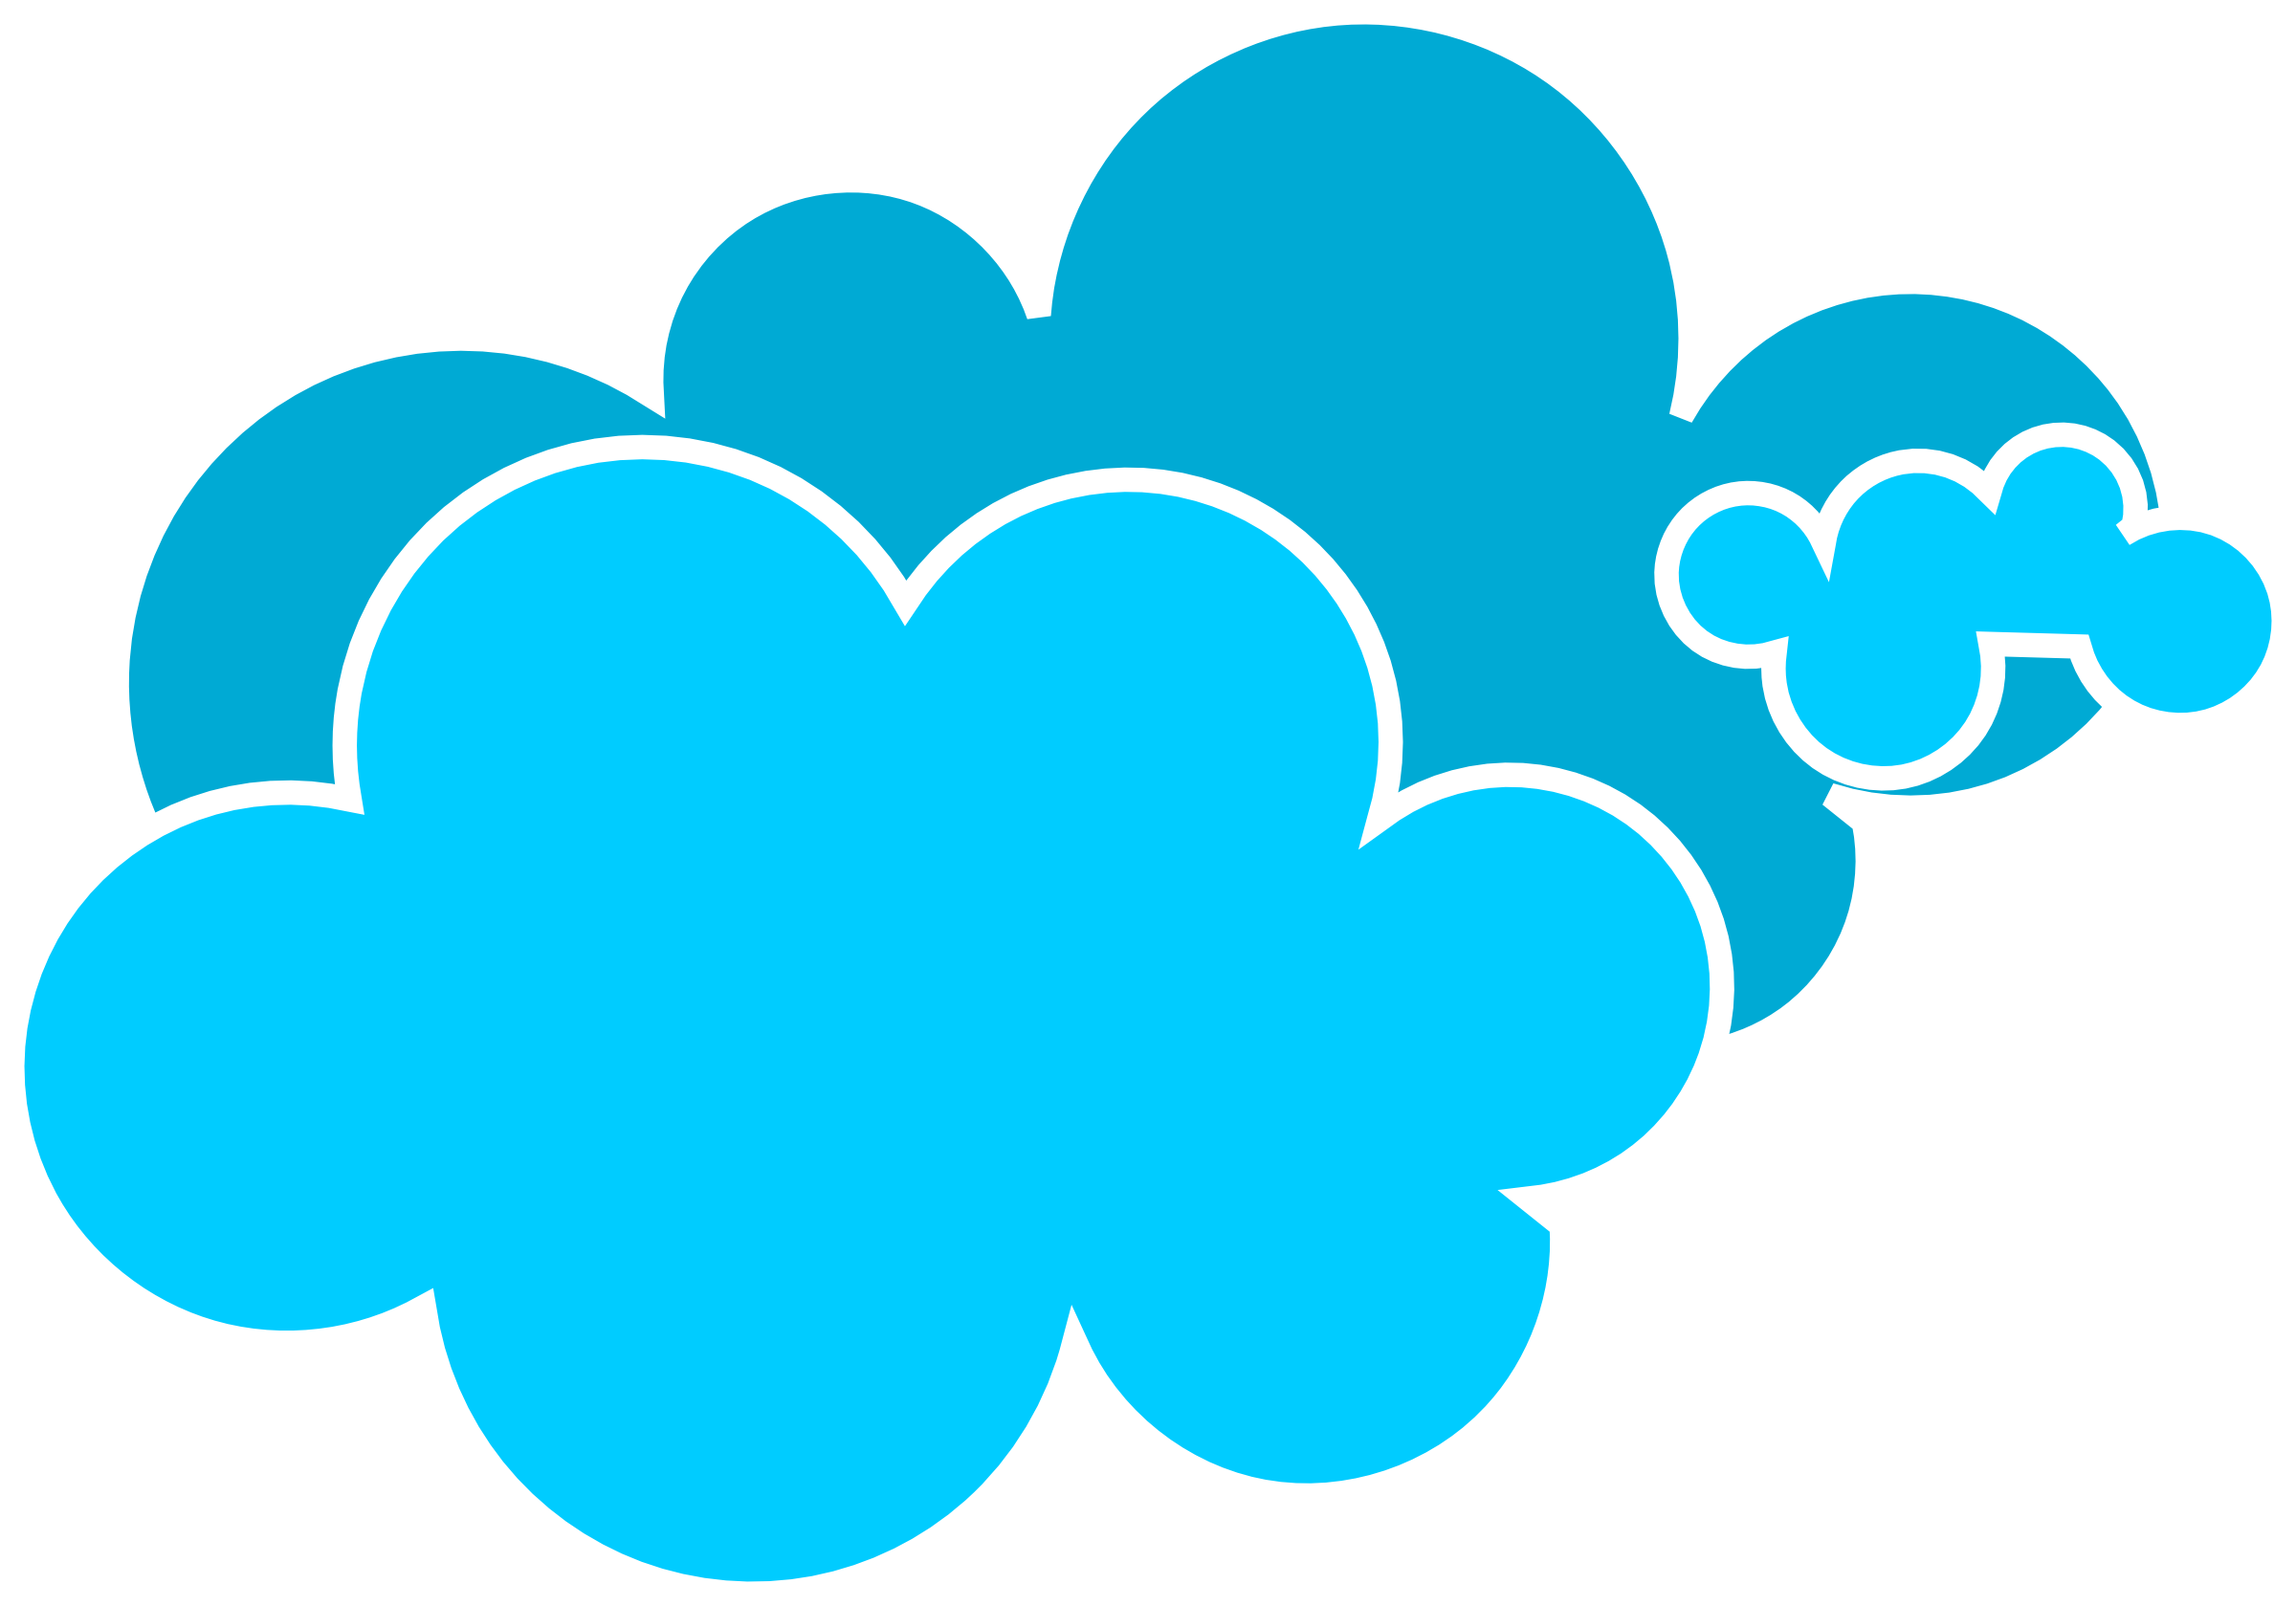 Clouds clipart Free Panda Images Clipart Clipart